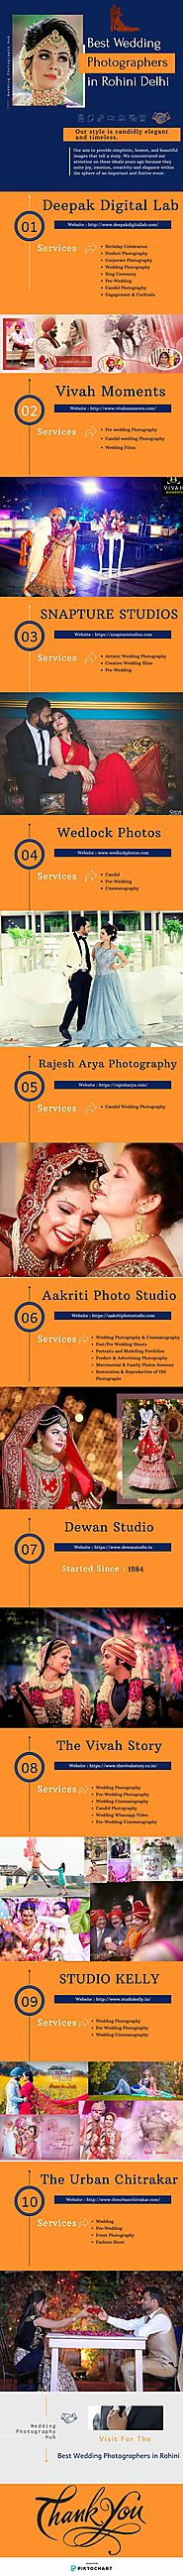 Best Wedding Photographers in Rohini Delhi | Infographic